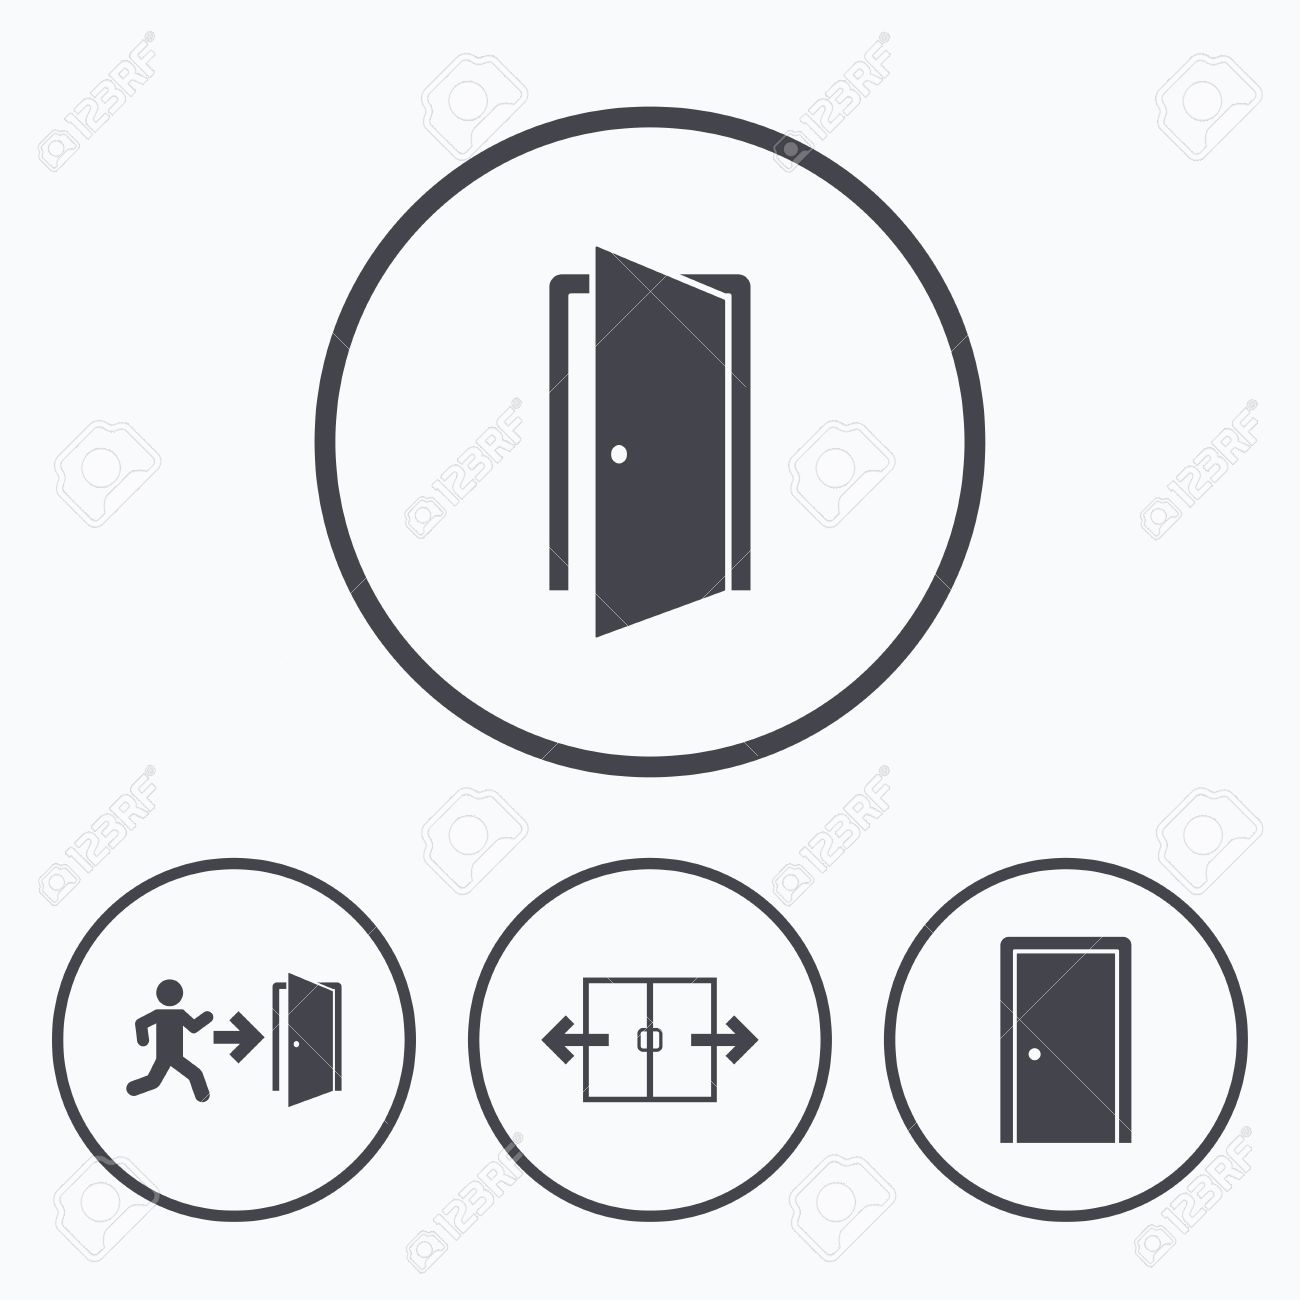 Automatic door icon. Emergency exit with human figure and arrow symbols. Fire exit signs